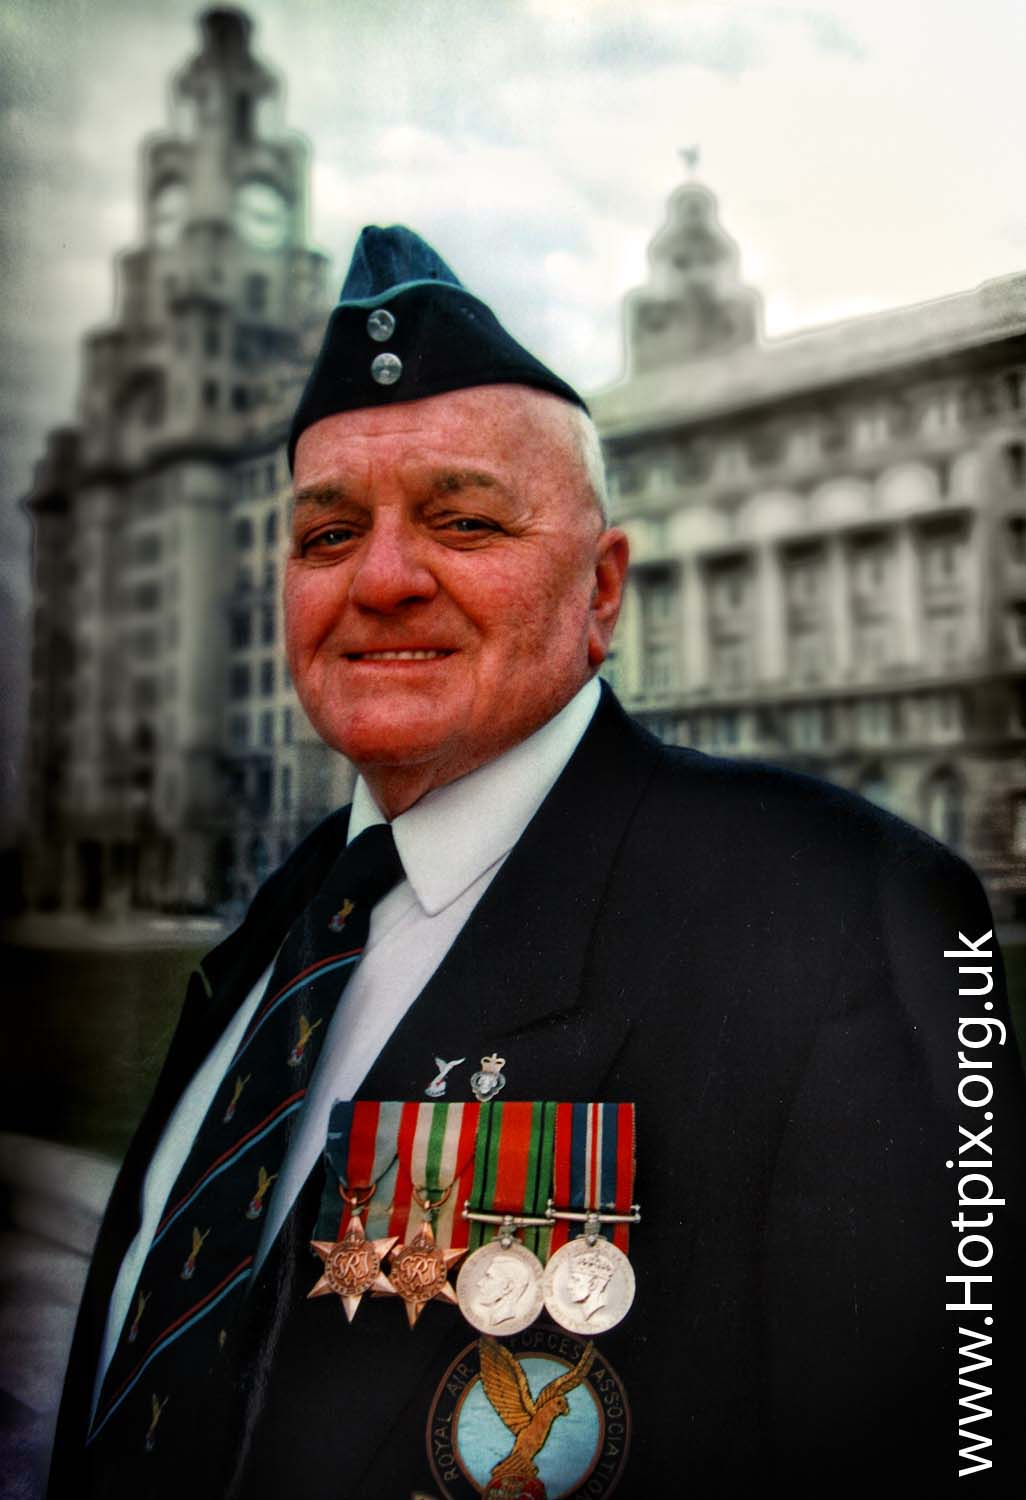 veteran,medal,medals,wr,old,soldier,pier,head,liverpool,mersey,merseyside,day,rememberence,rememberance,celebration,cenataph,england,english,UK,British,britain,great,royal,air,force,association,GB,november,11,11/11,11th,liver,building,cunard